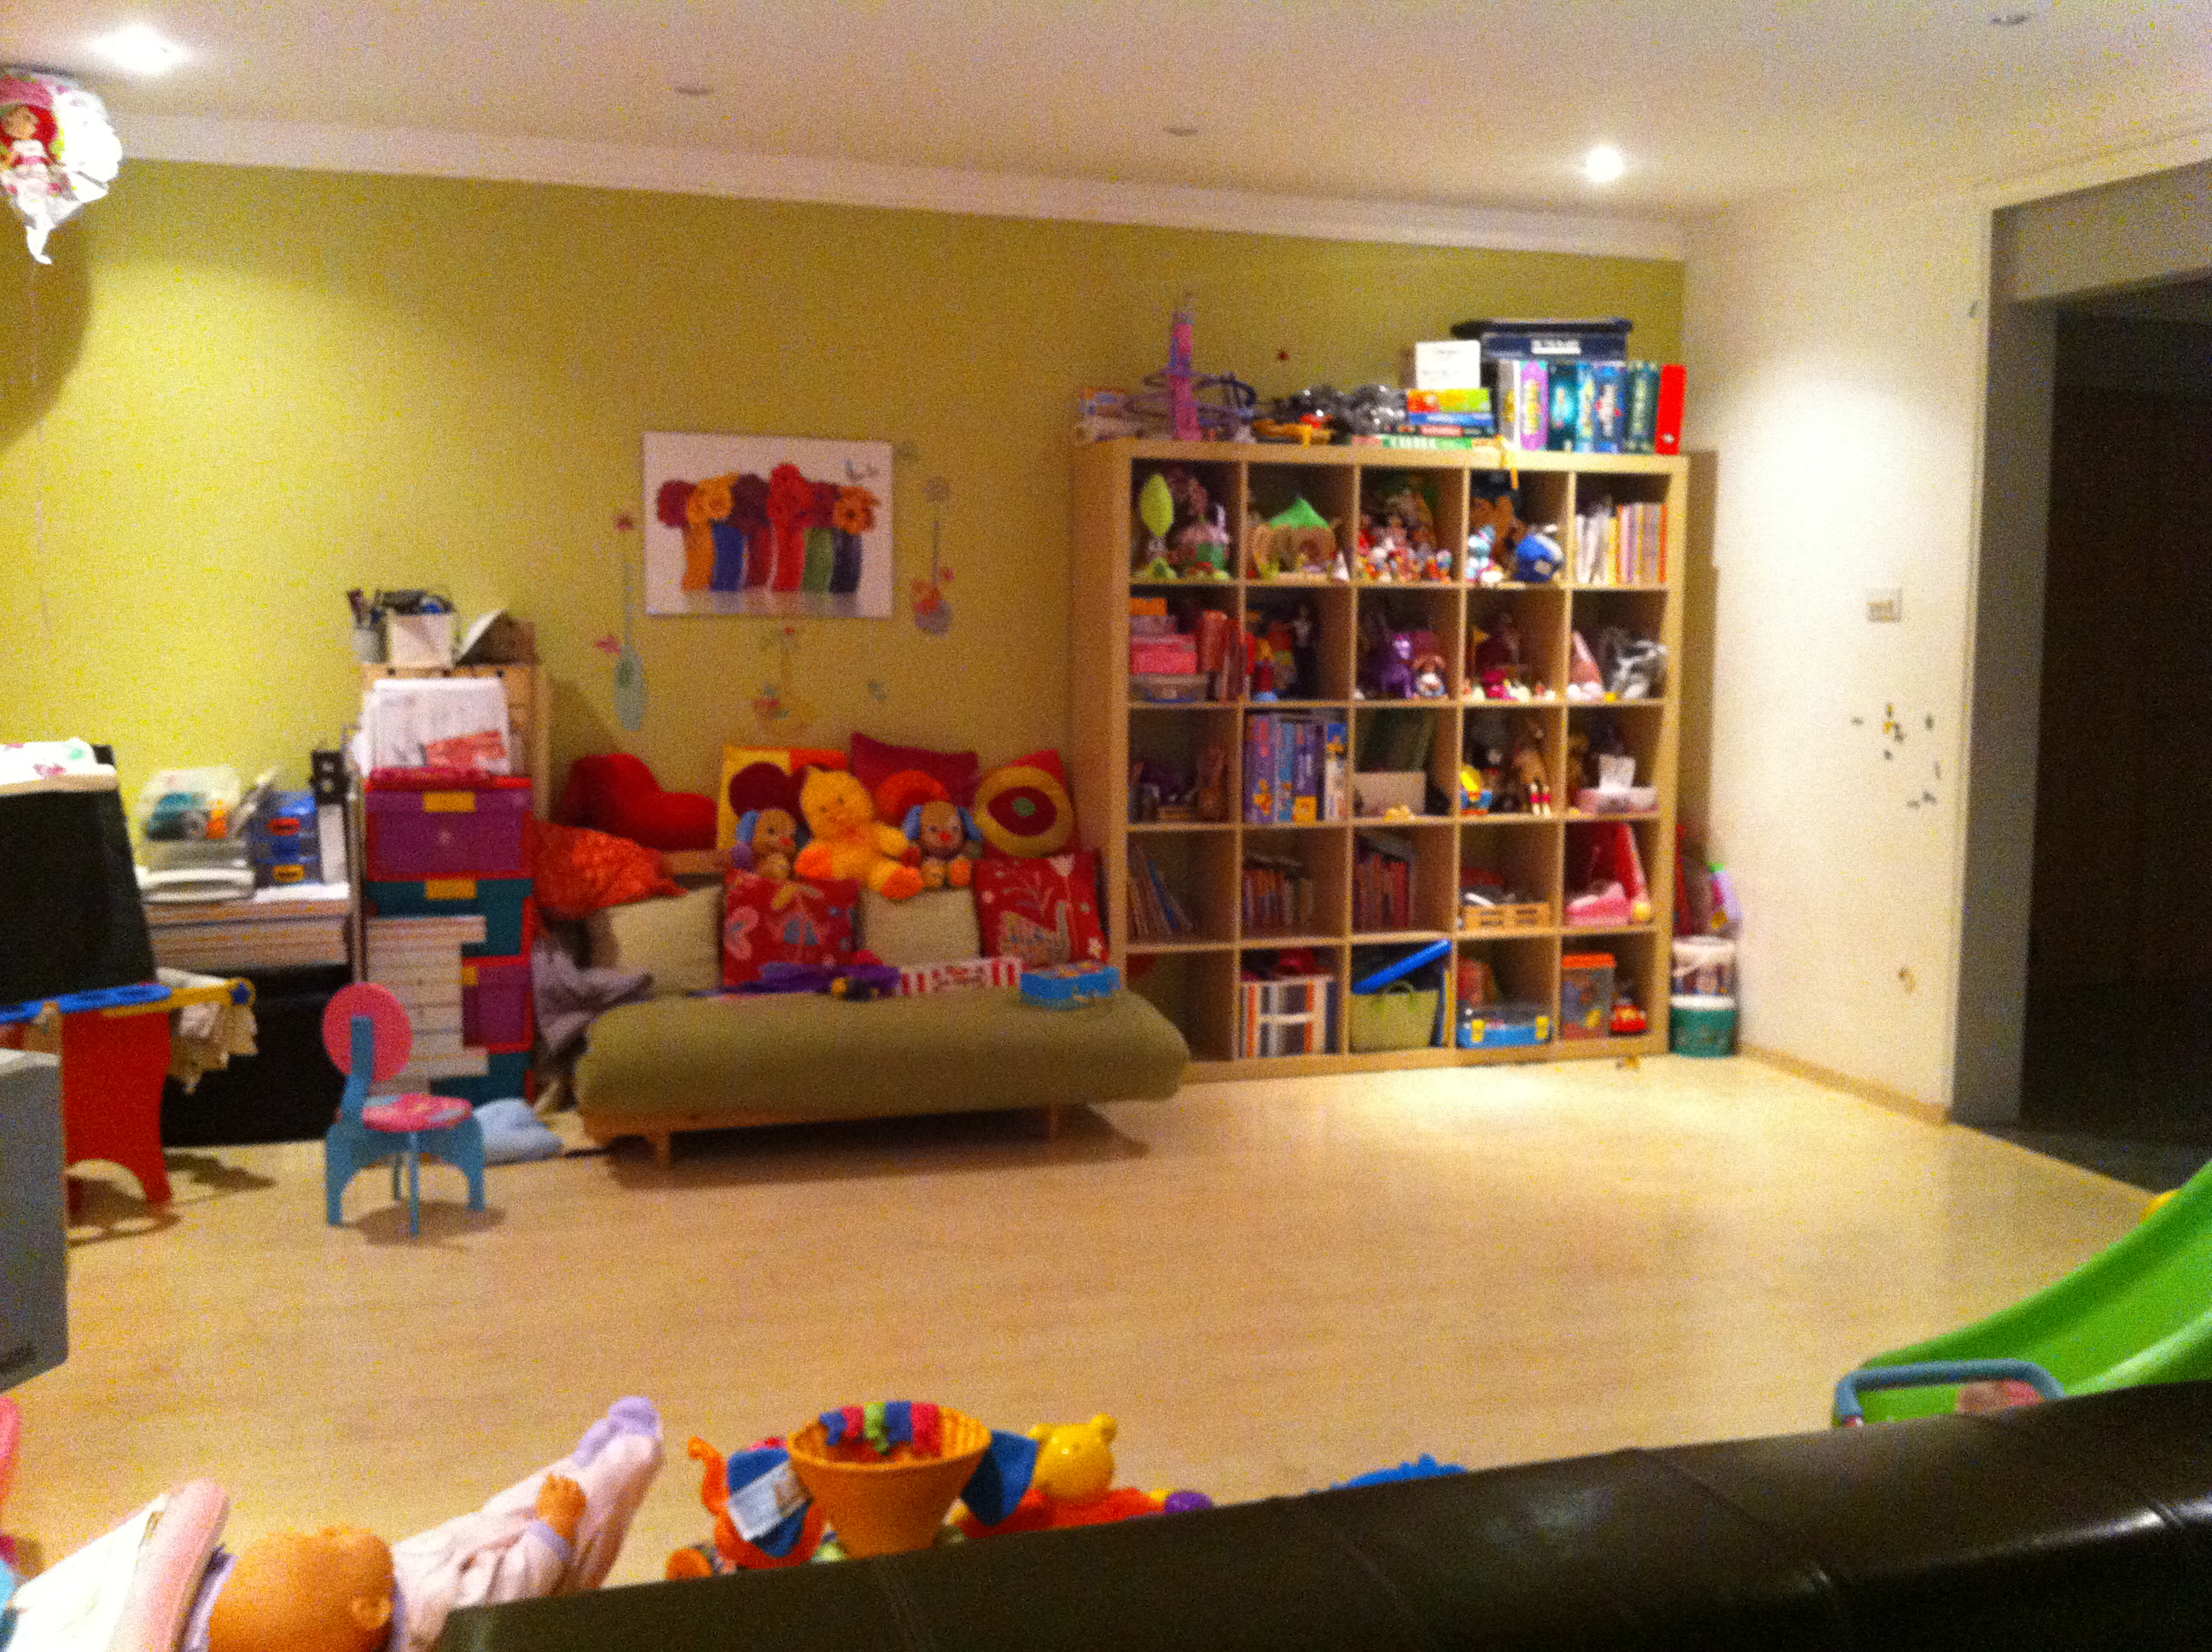 J&Zs colorful playroom